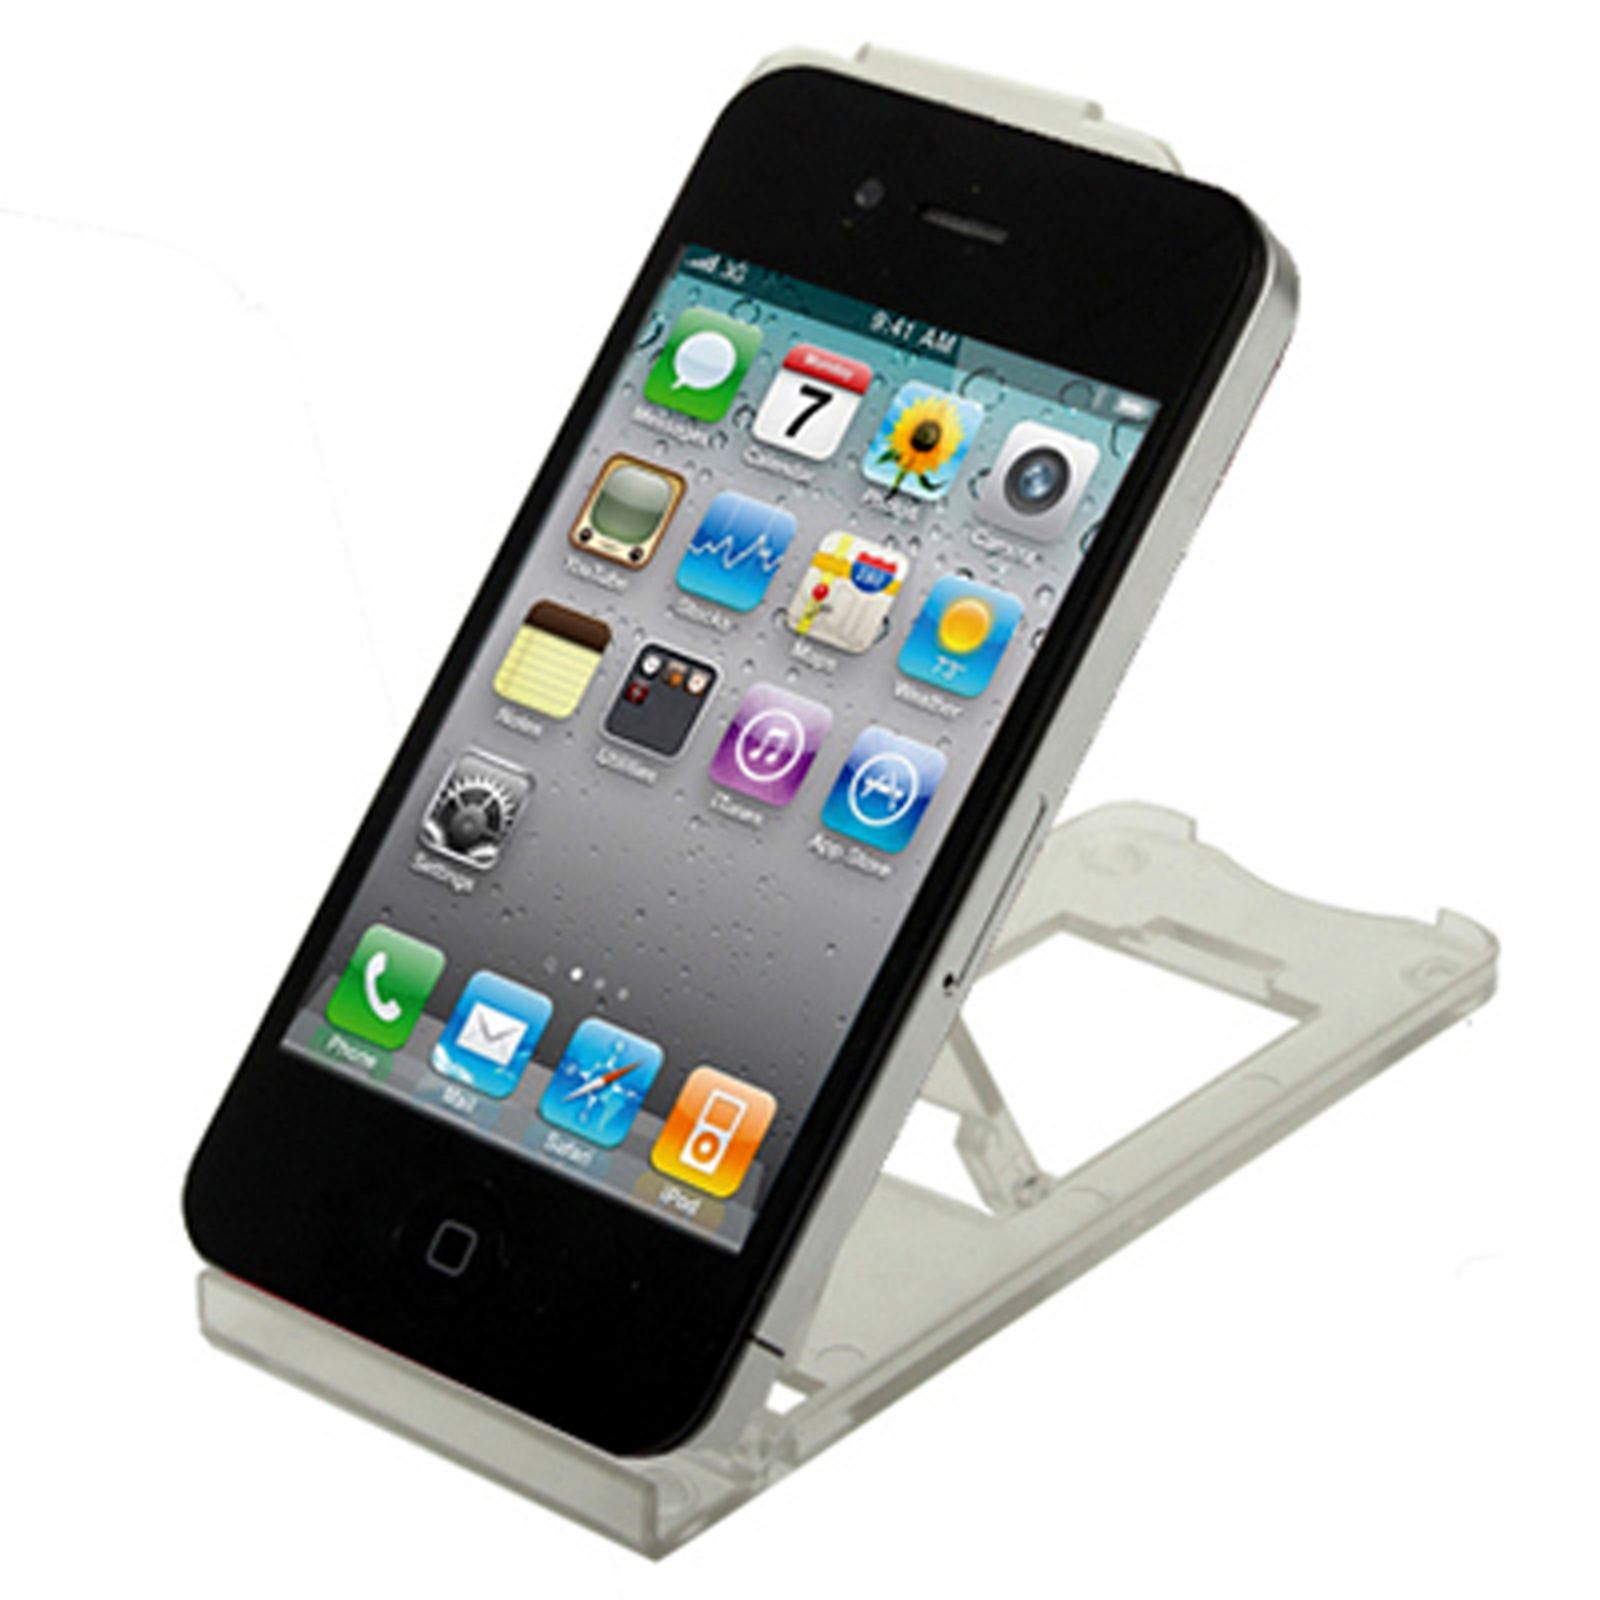 iPad Tablet iPhone Desk Stand Holder Mobile Phone Folding